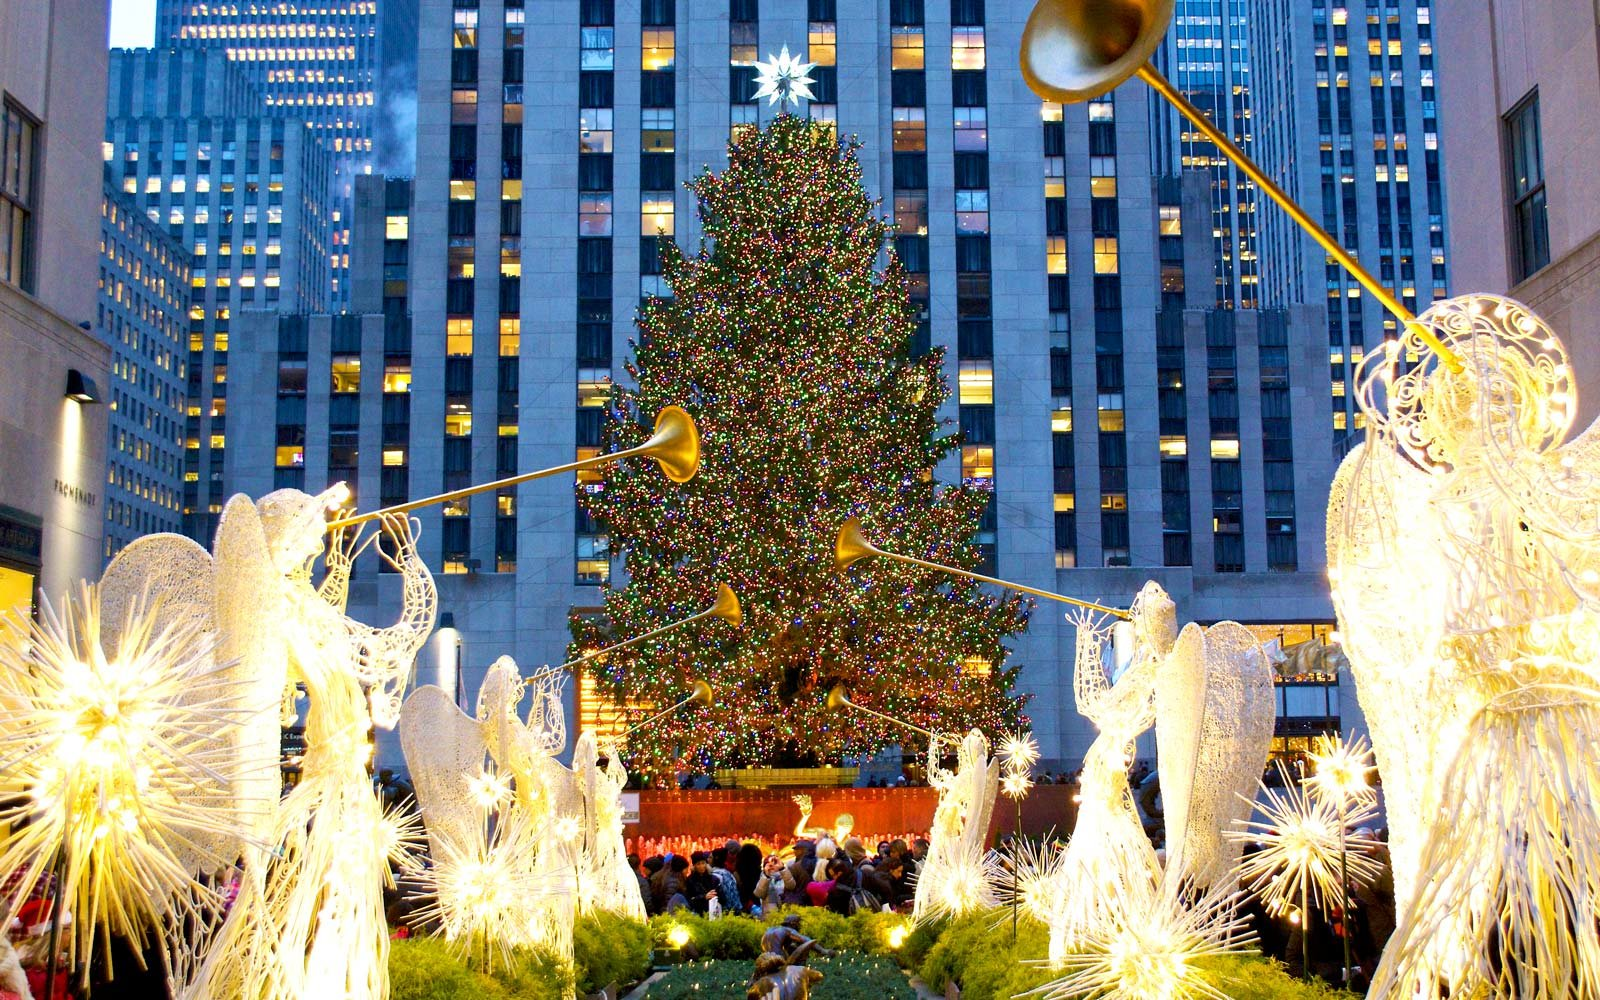 i got a glimpse of the christmas tree at rockefeller center im sure you have to either with your own eyeballs or on the social media platform of your